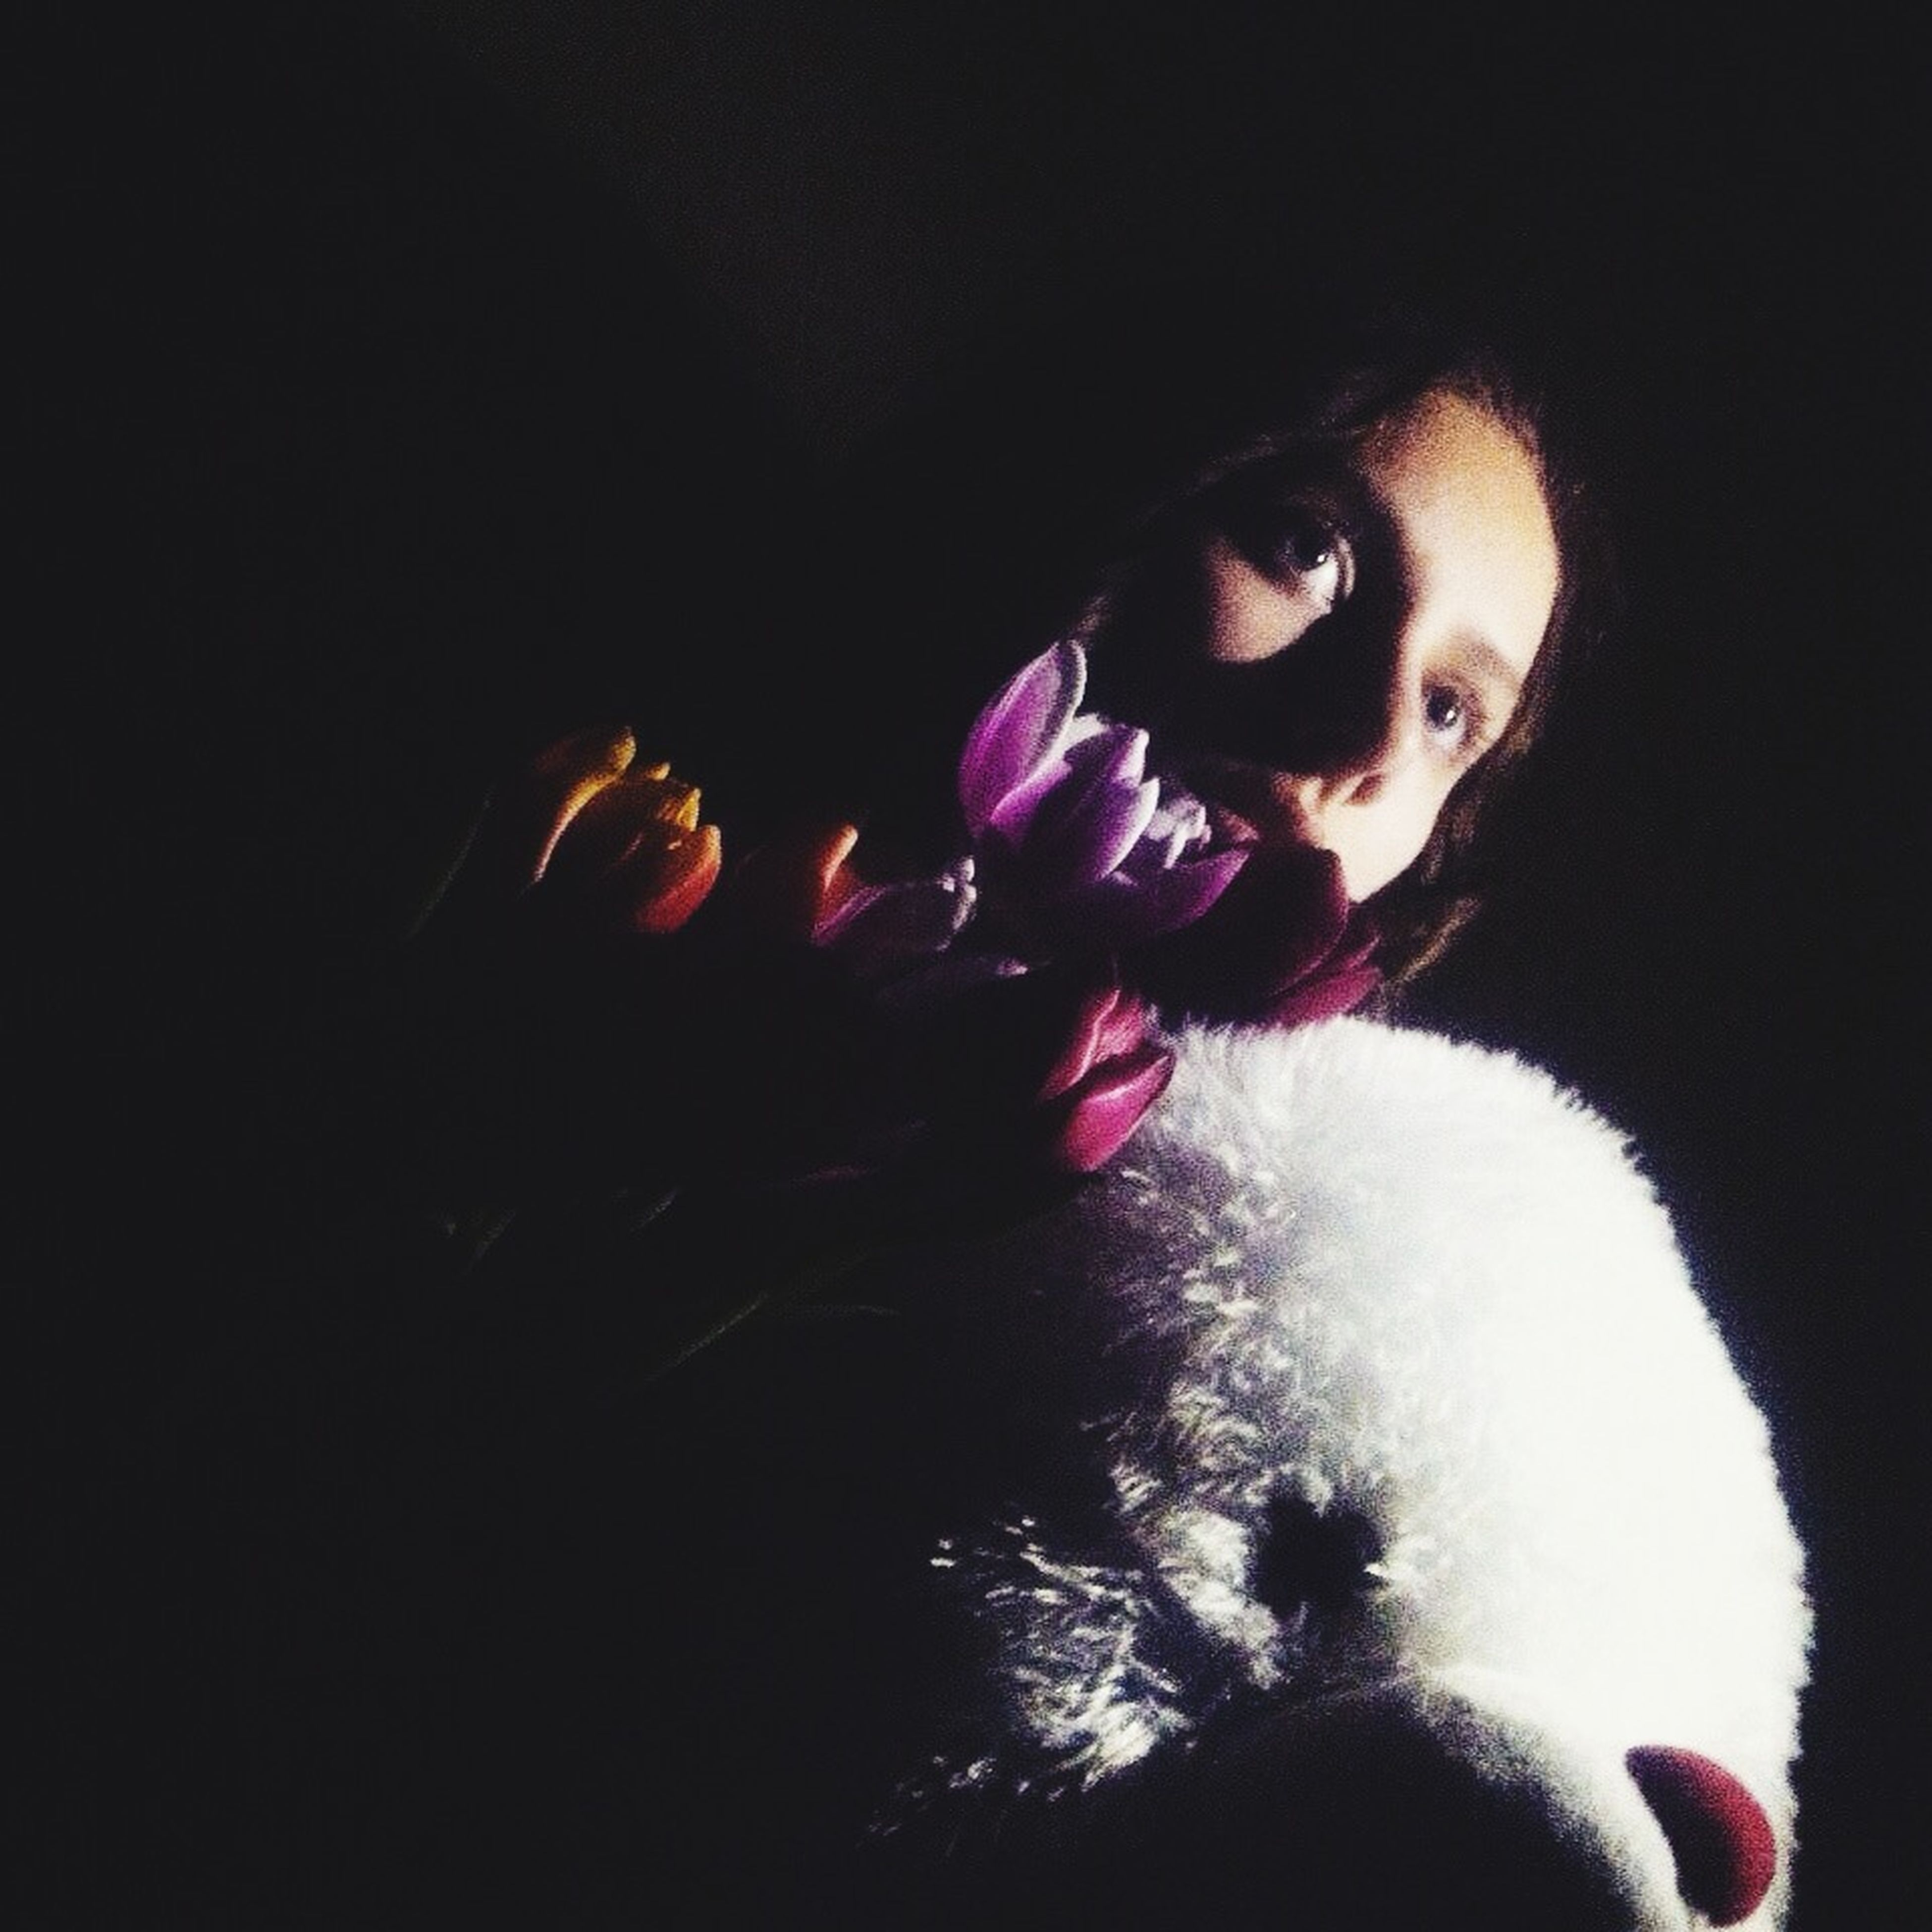 indoors, night, illuminated, studio shot, portrait, black background, looking at camera, close-up, headshot, home interior, front view, celebration, copy space, lifestyles, leisure activity, childhood, toy, halloween